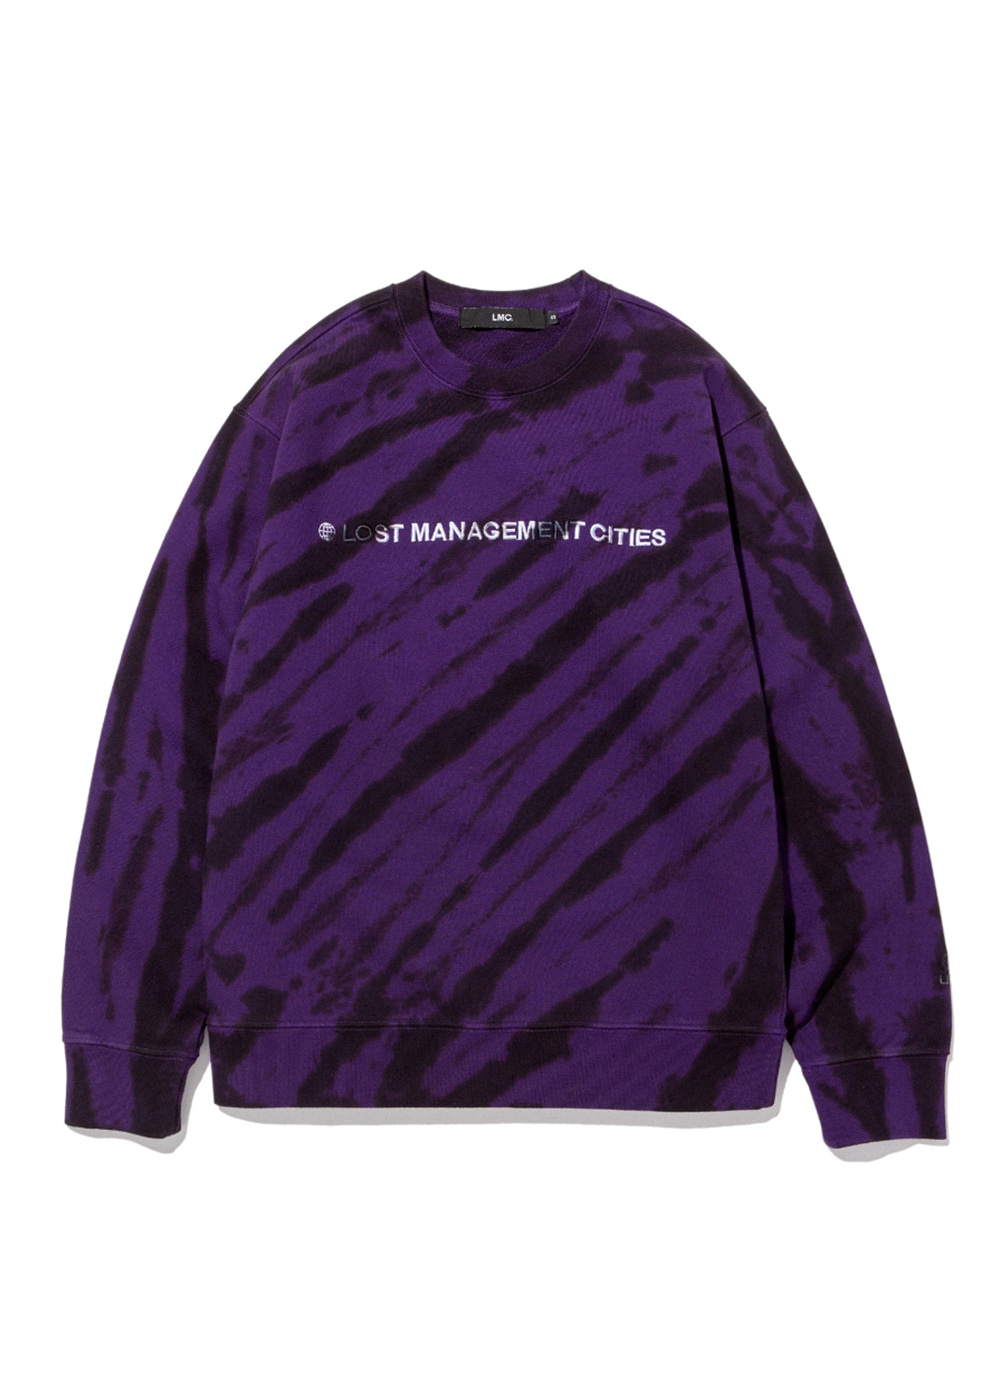 LMC CAPITAL LOGO TIE DYE SWEATSHIRT purple